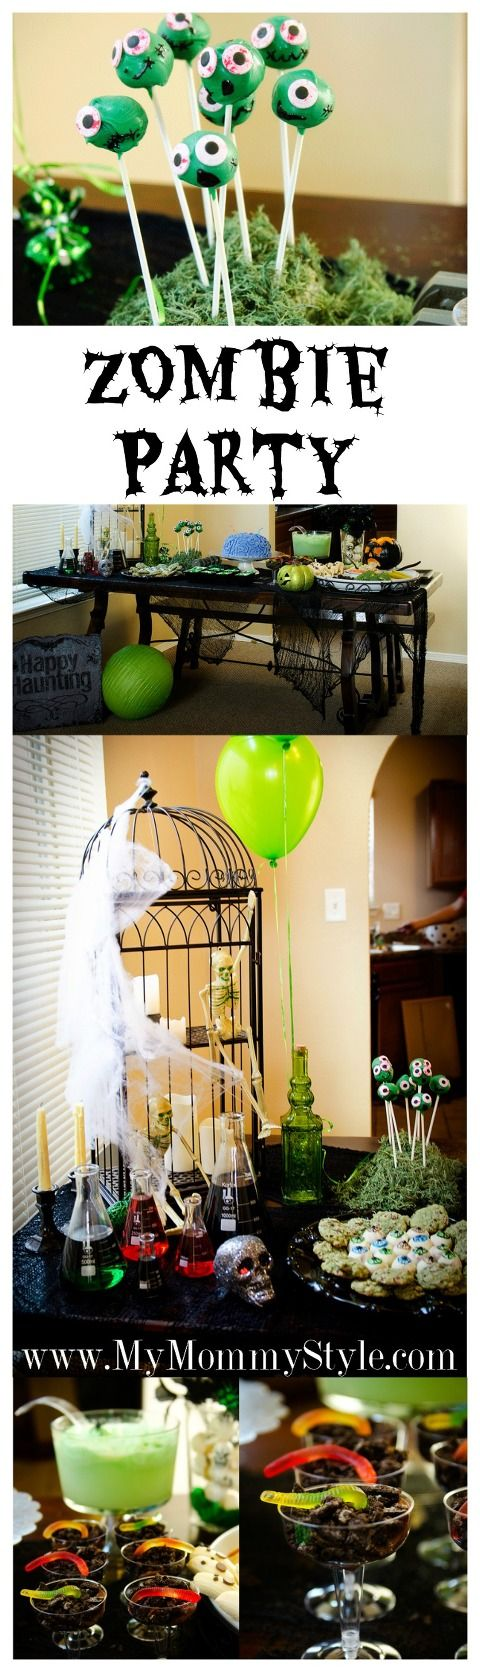 This zombie party is made to be enjoyed by all ages! Zombies are all the rage now with games like Plants vs Zombies and The Walking Dead! This will give you all the ideas you need to throw a killer party that is kid friendly too! :)